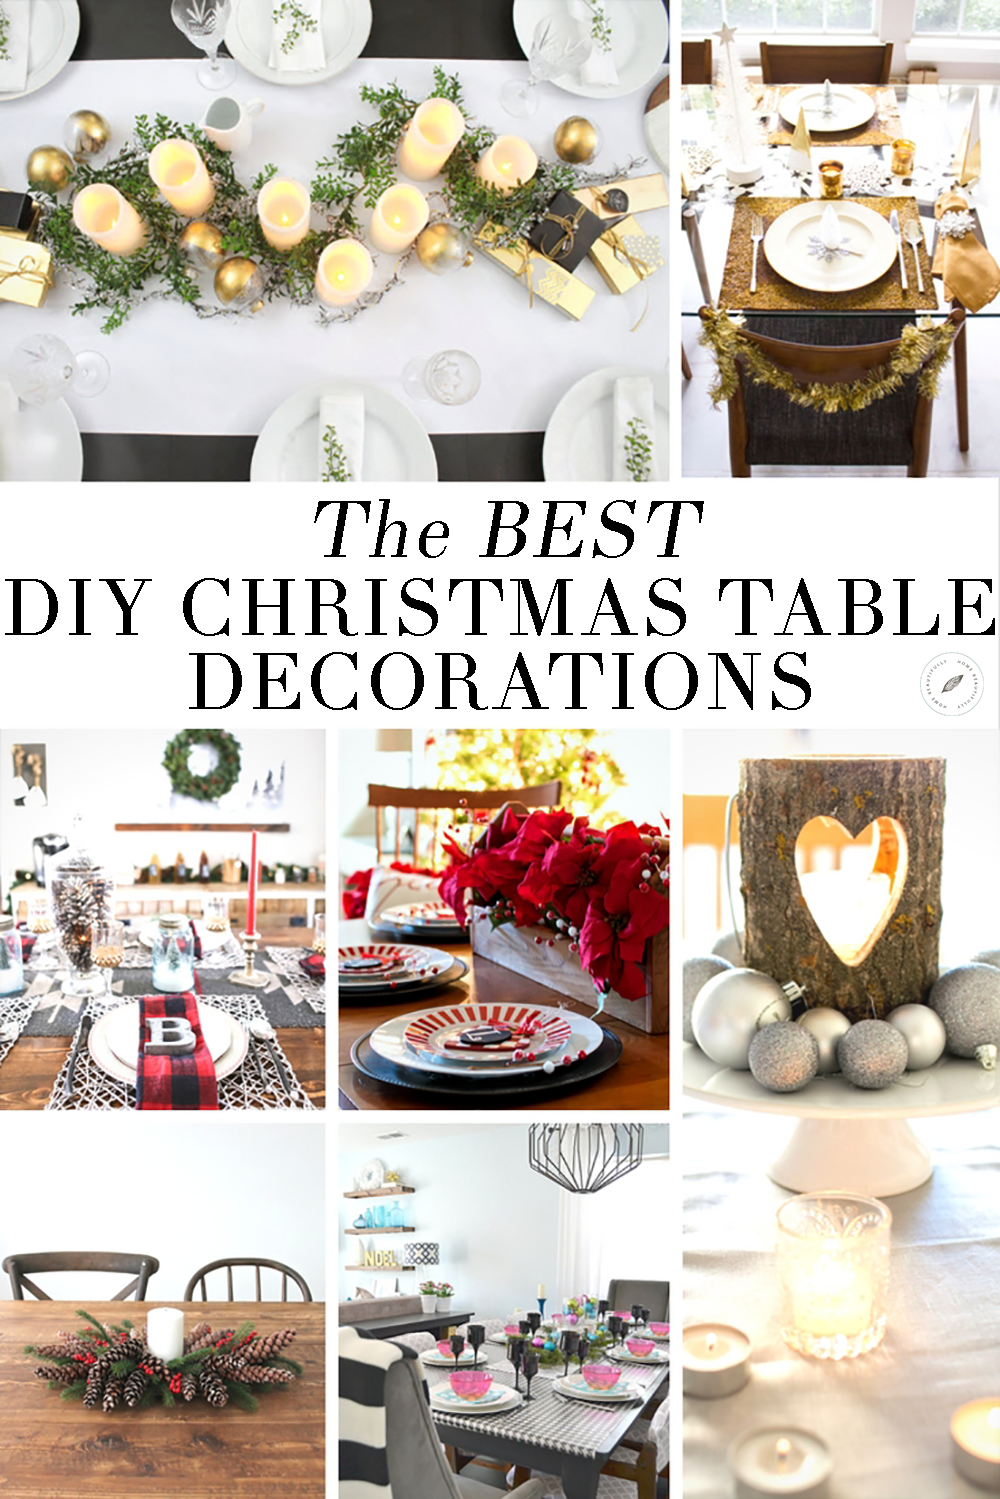 The best diy christmas table decorations mom blogs to follow diy christmas table decorations love decorating for the holidays these easy affordable do it yourself table and place settings will have your ideas and solutioingenieria Images